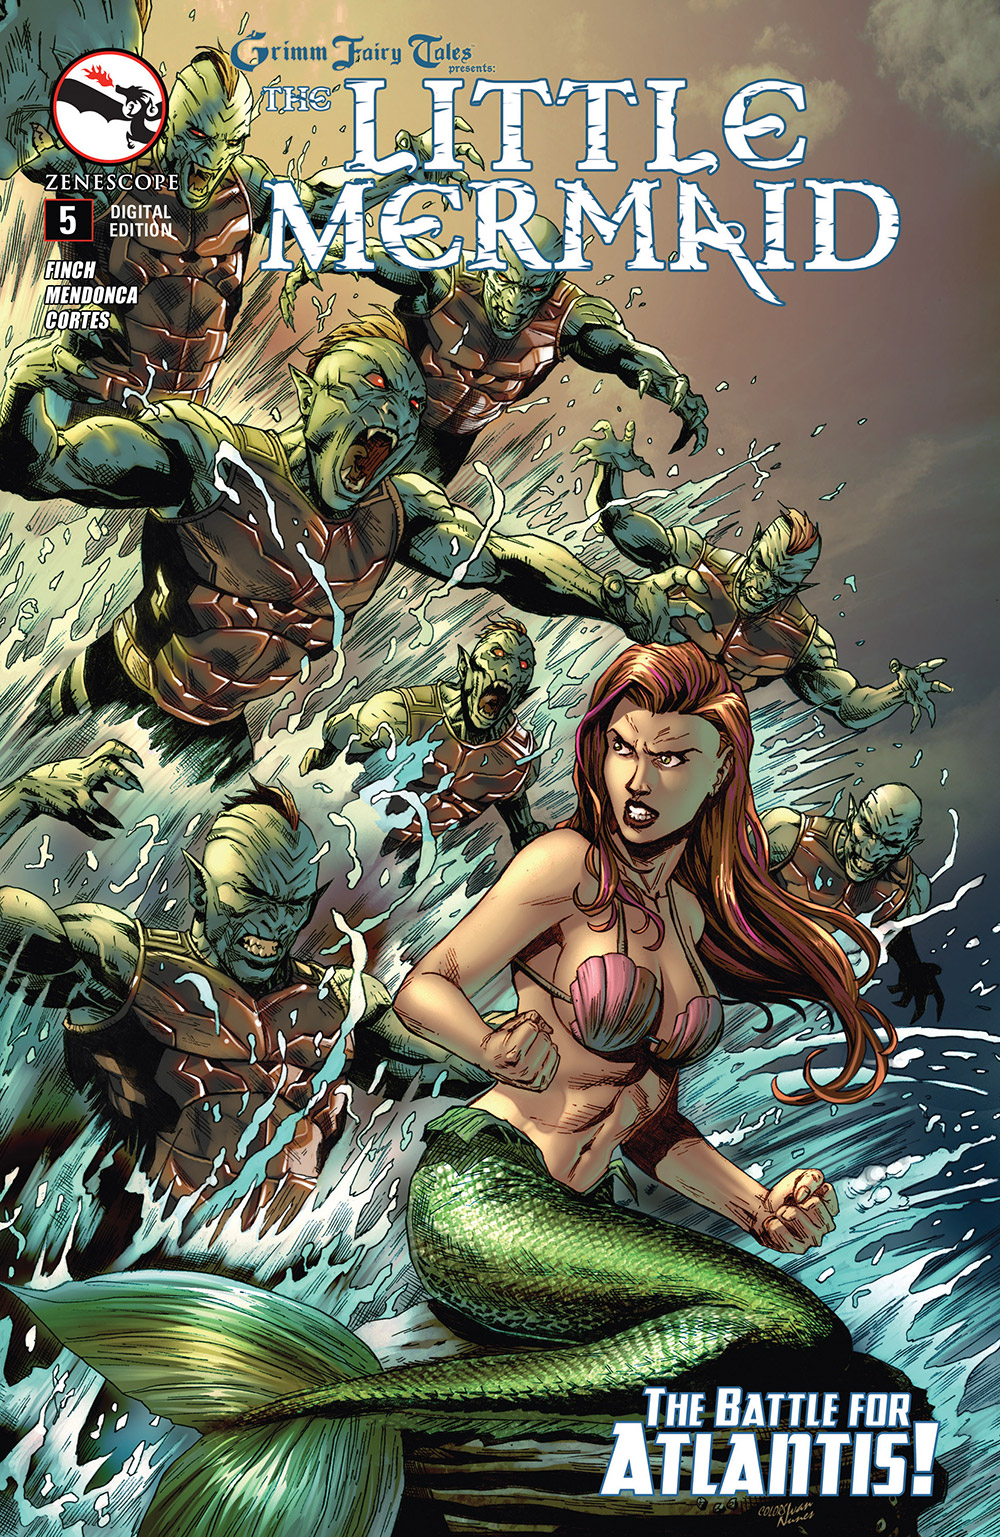 Grimm Fairy Tales Presents The Little Mermaid 005 (2015